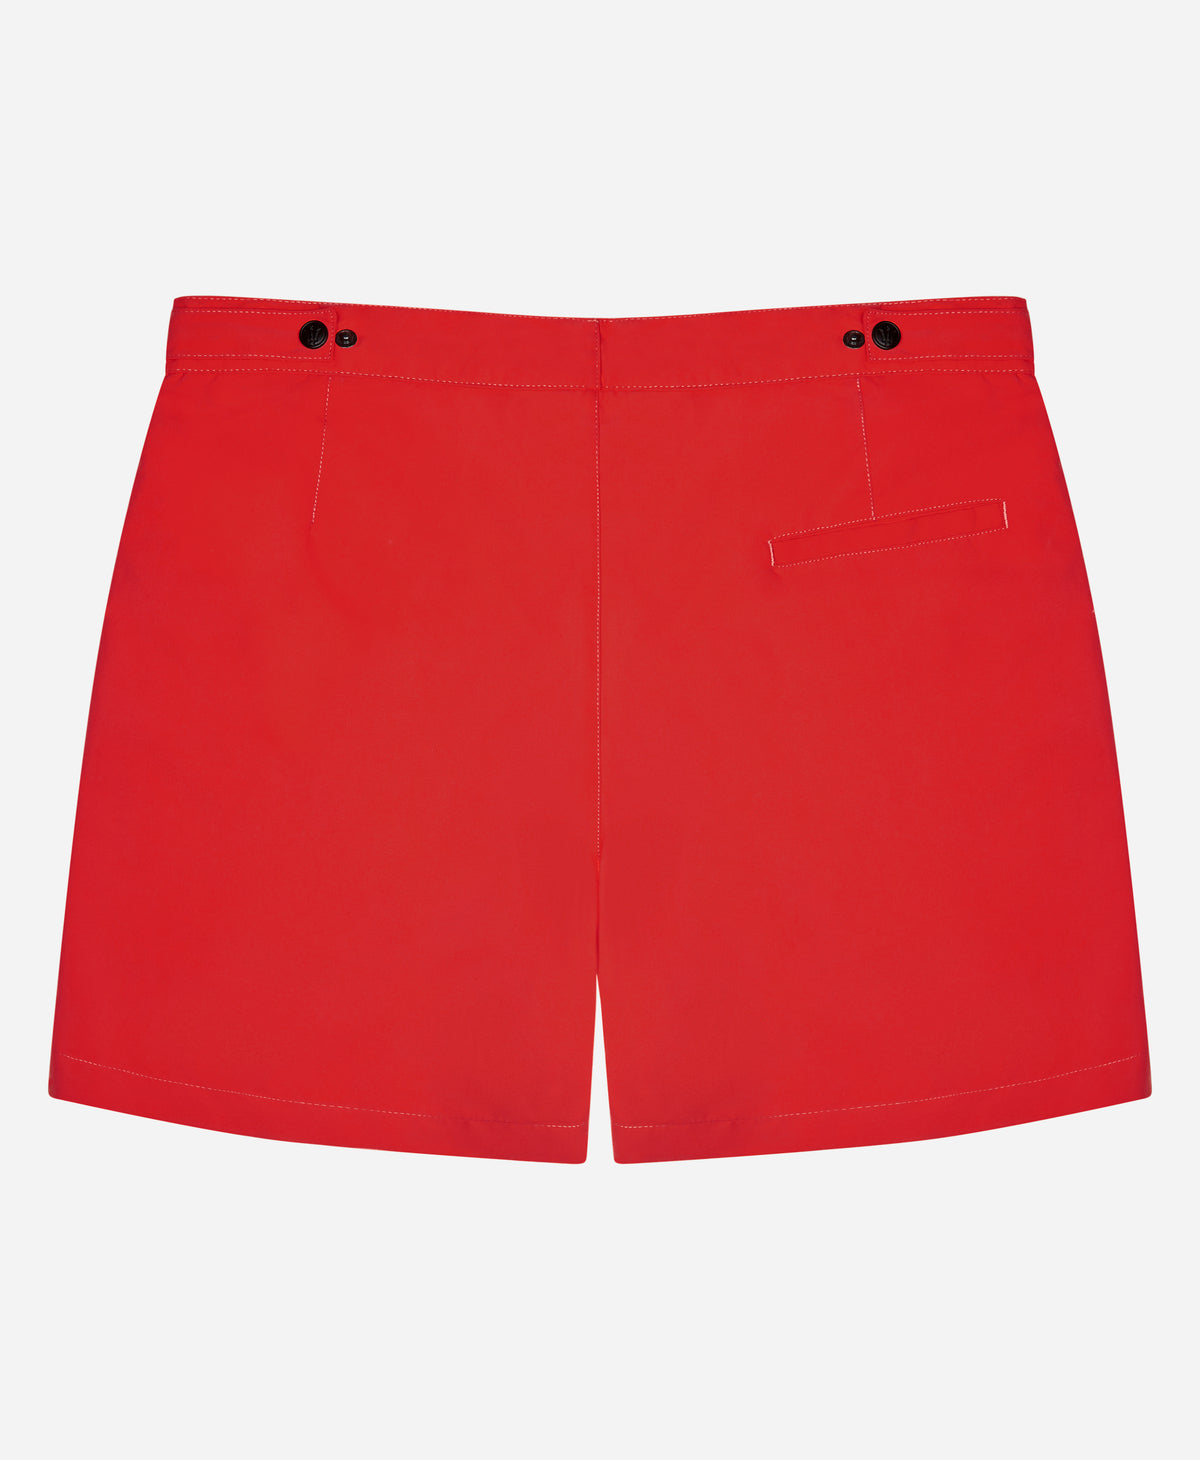 Tailored Original Swim Shorts - Reef Red